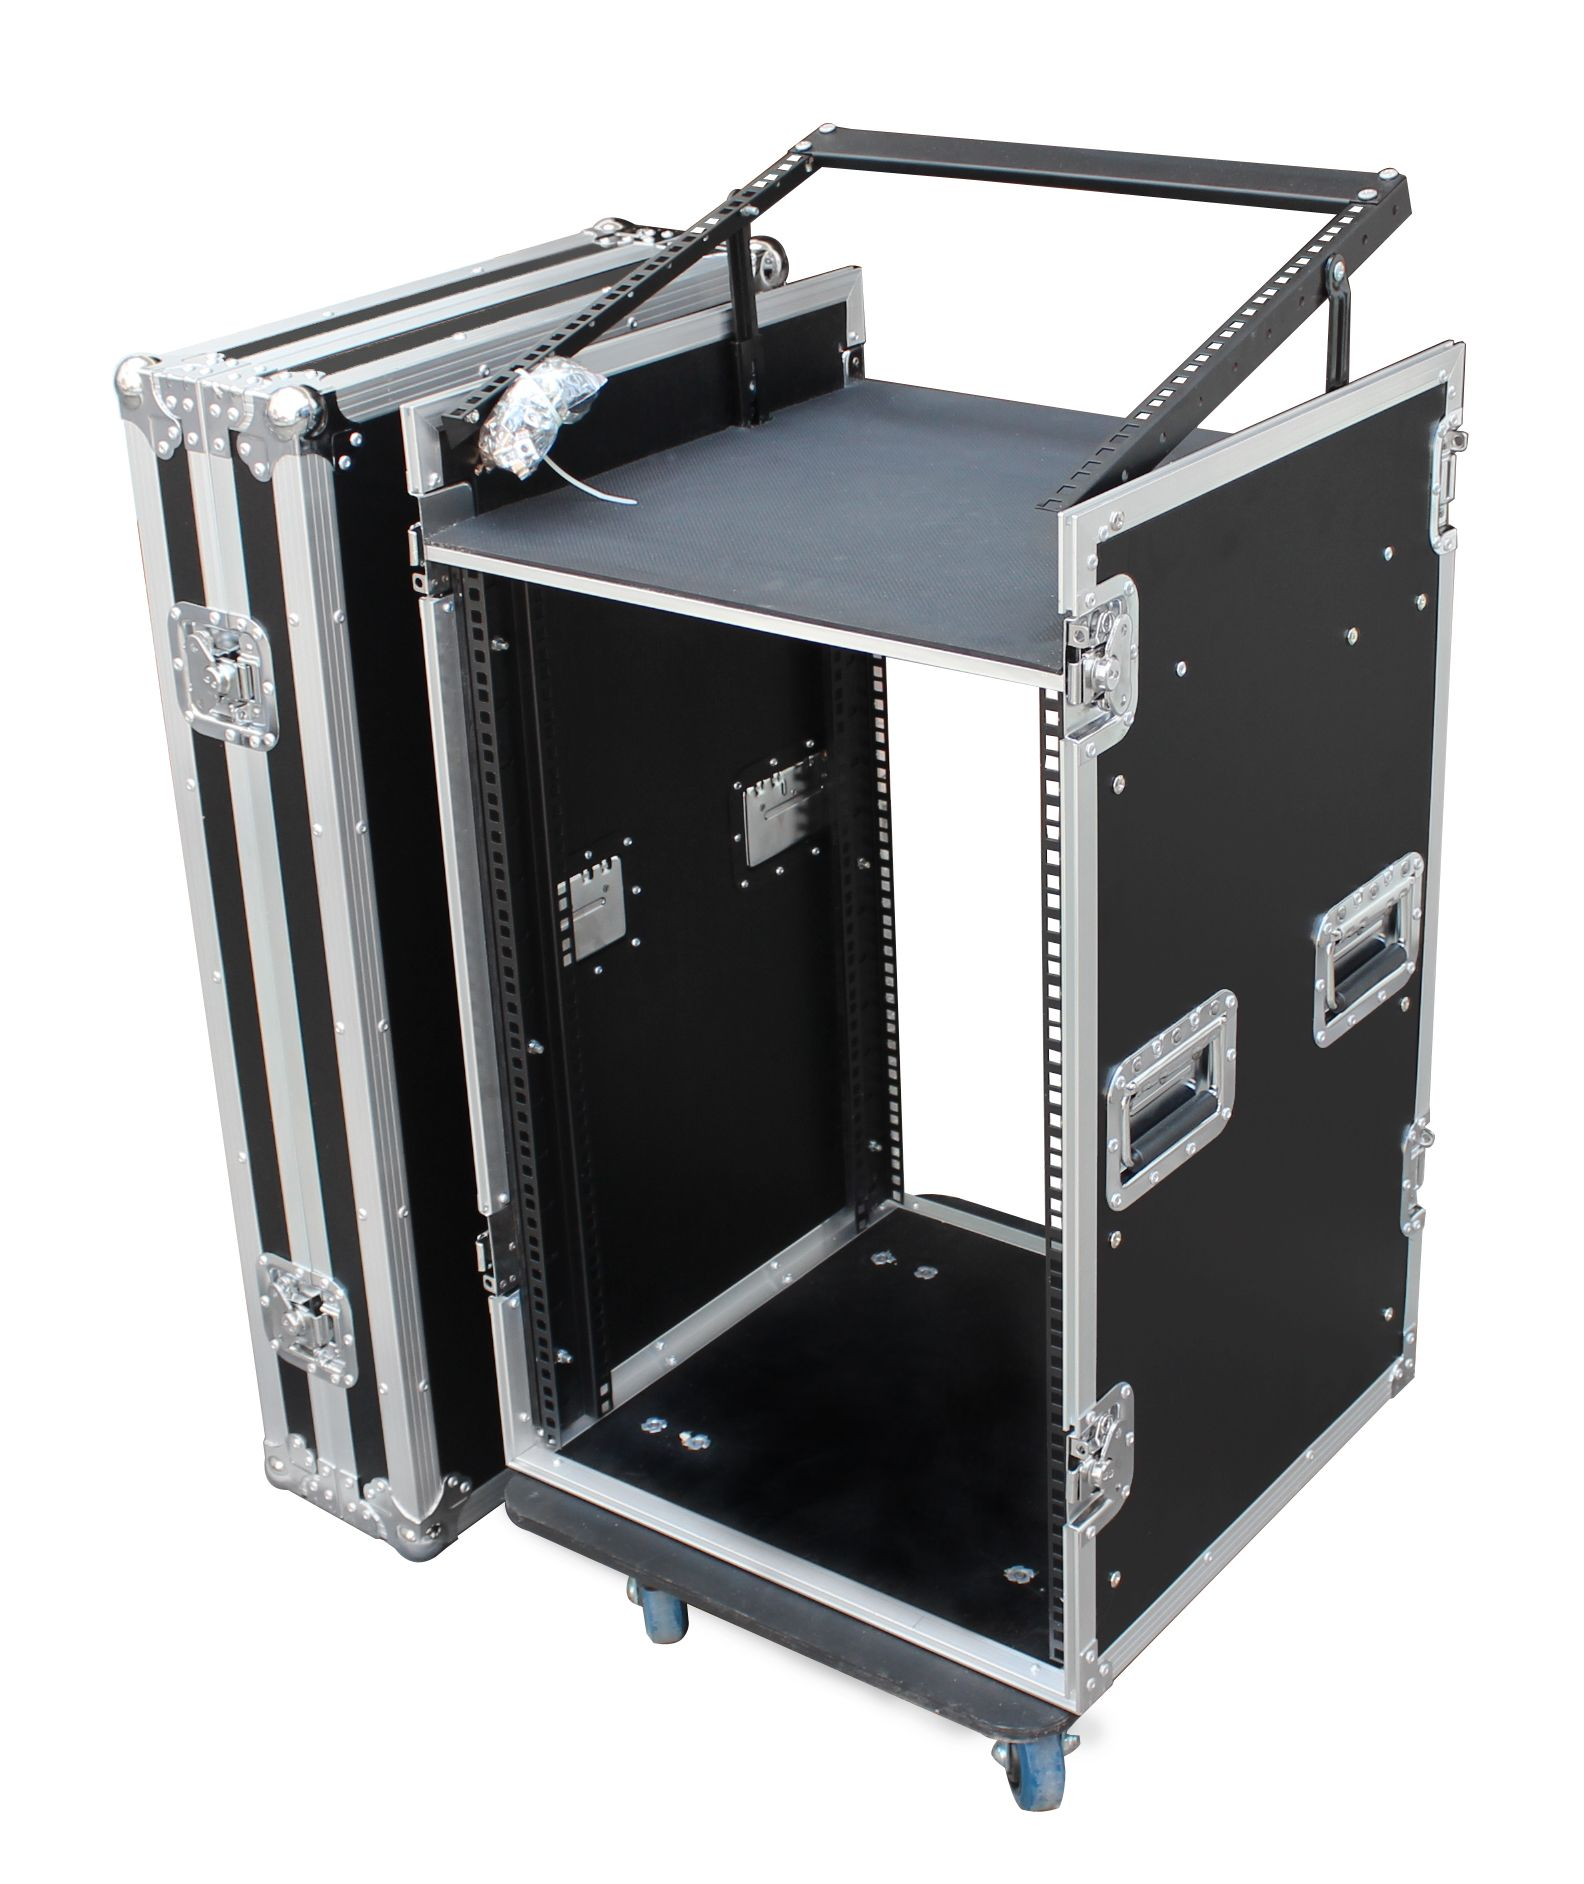 Flight Case Standard Rack Case Teknologi